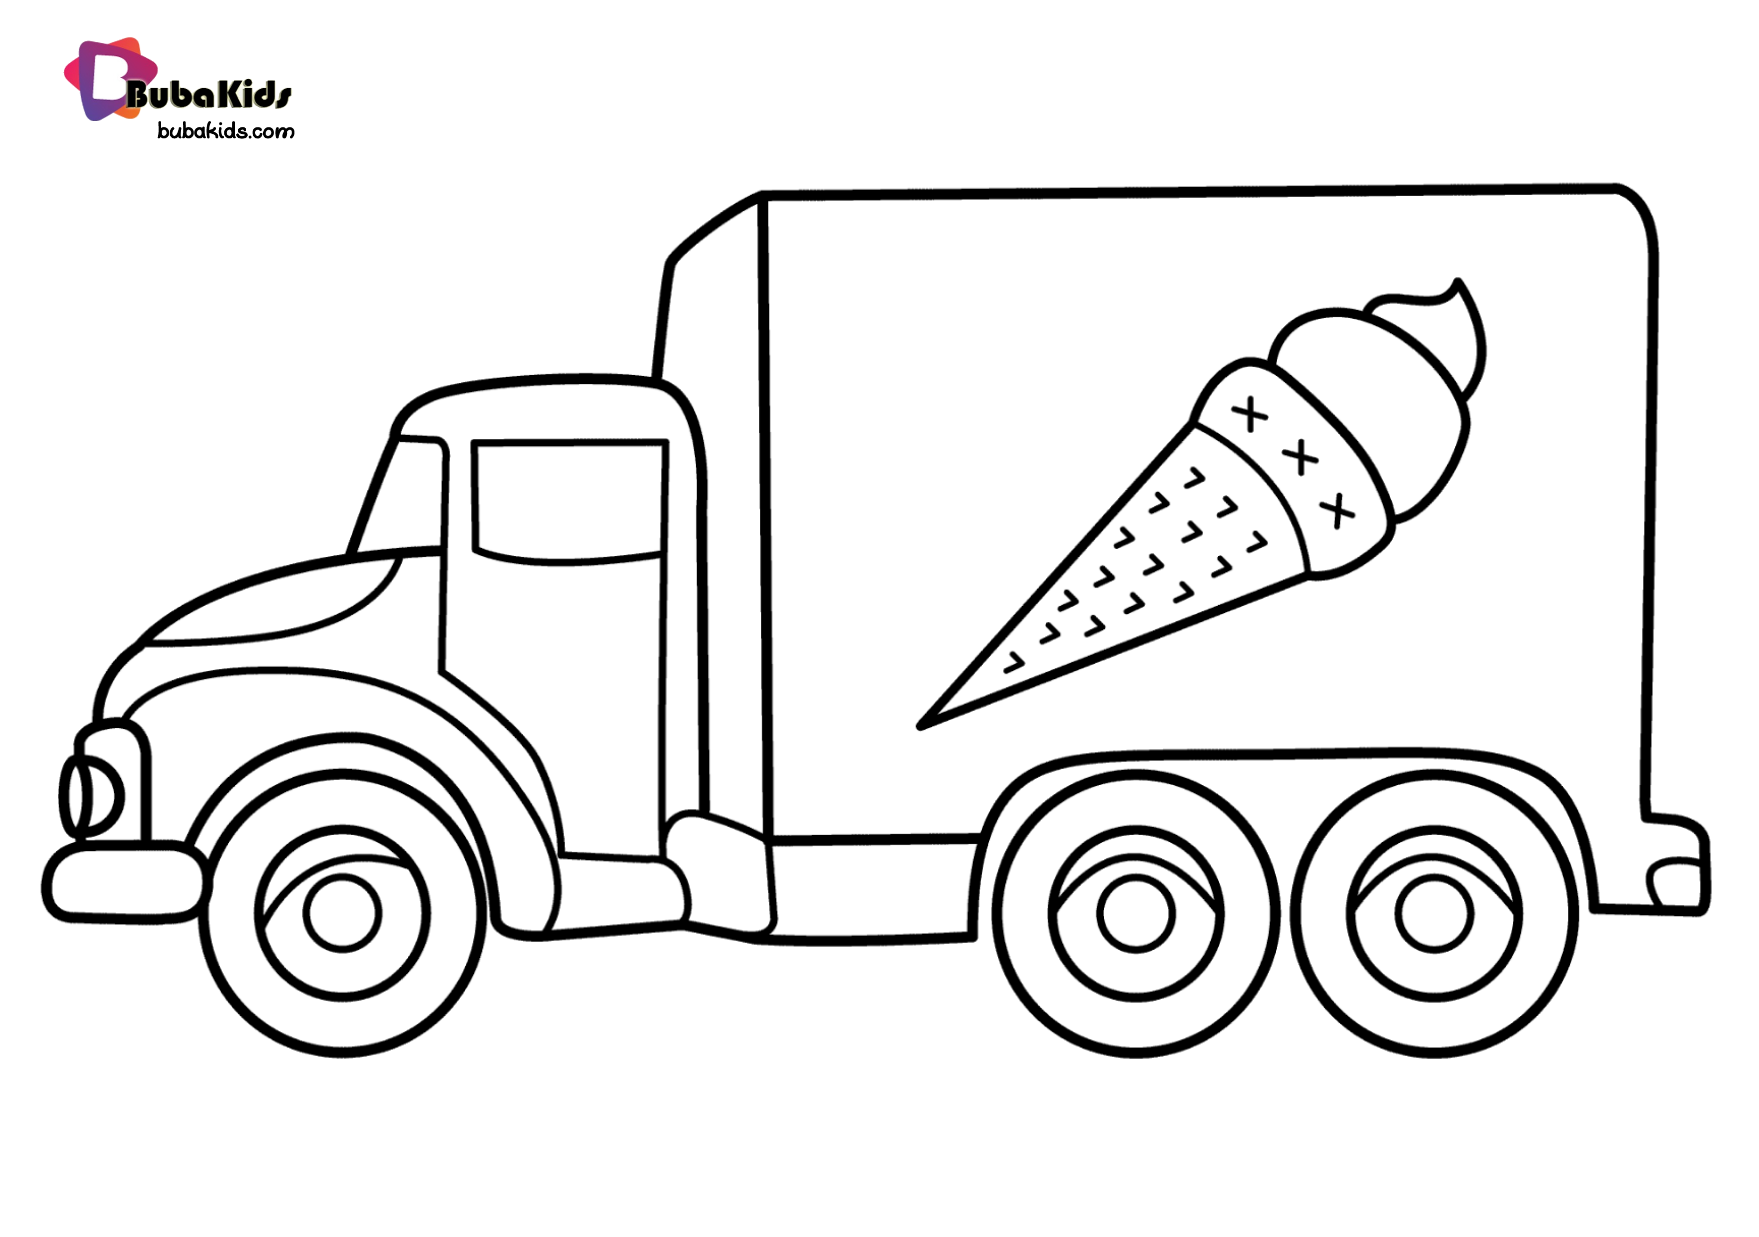 Coloring Page Truck Coloring Pages 4 Truck Coloring Pages Monster Truck Coloring Pages Cars Coloring Pages